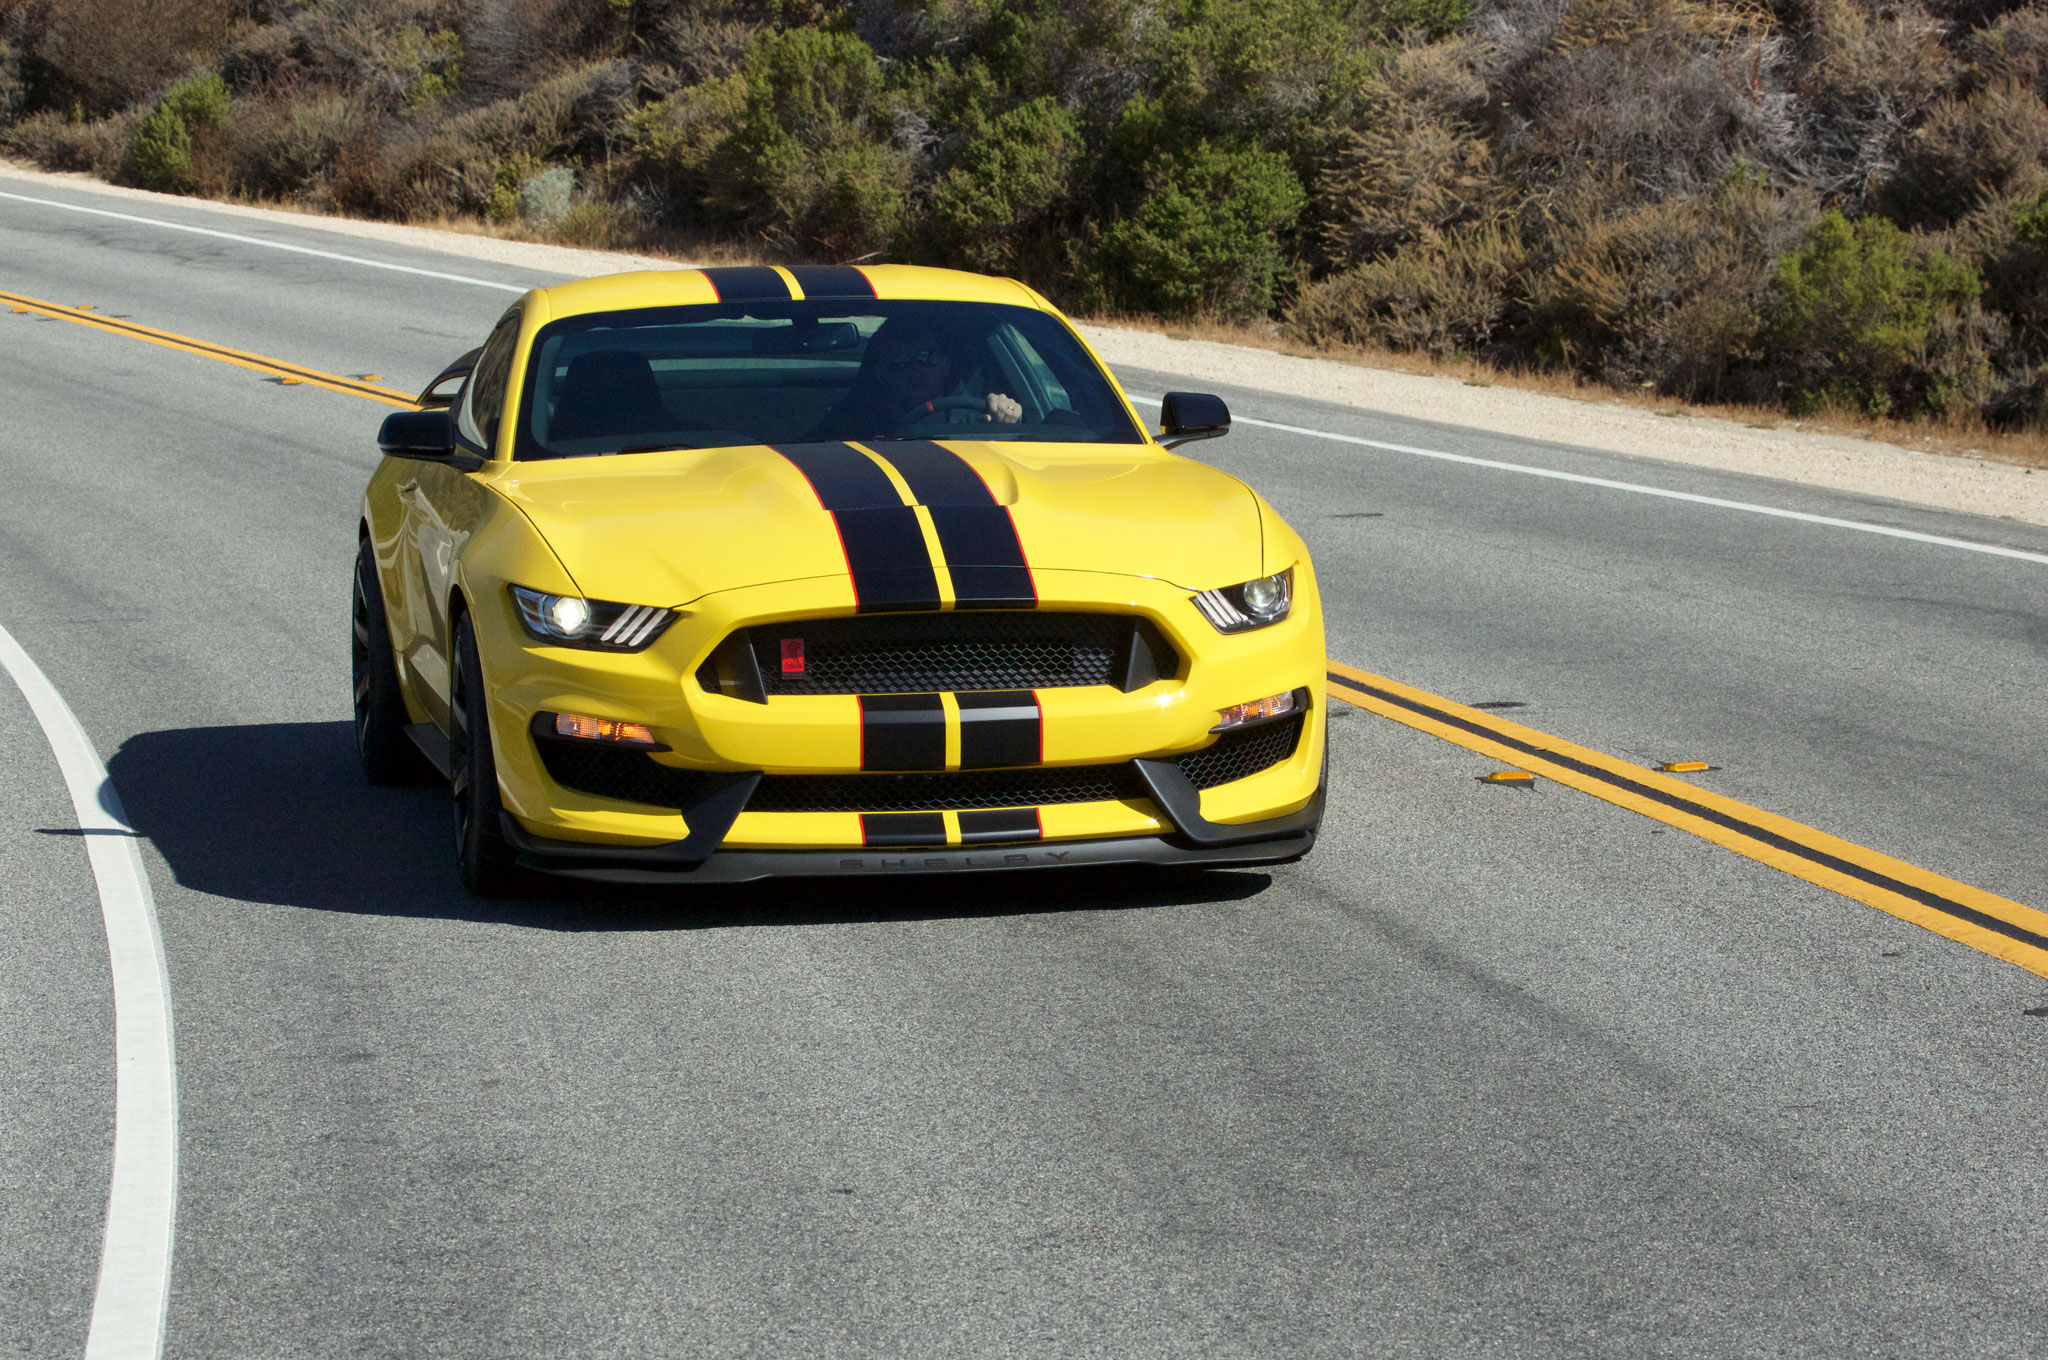 Gt350r Review >> 2016 Ford Shelby Gt350r Mustang First Drive Review Motortrend